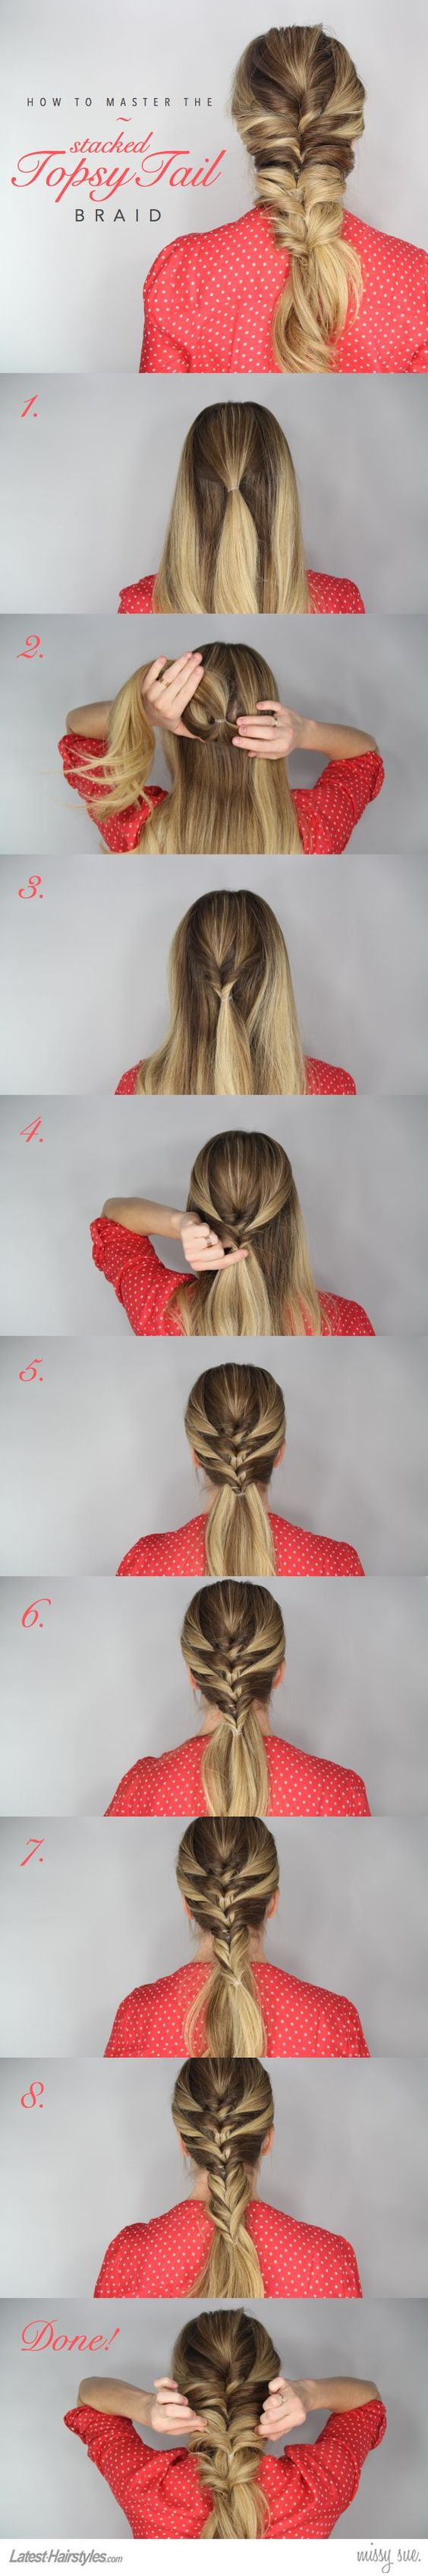 Stacked-Topsy-Tail-Braid over